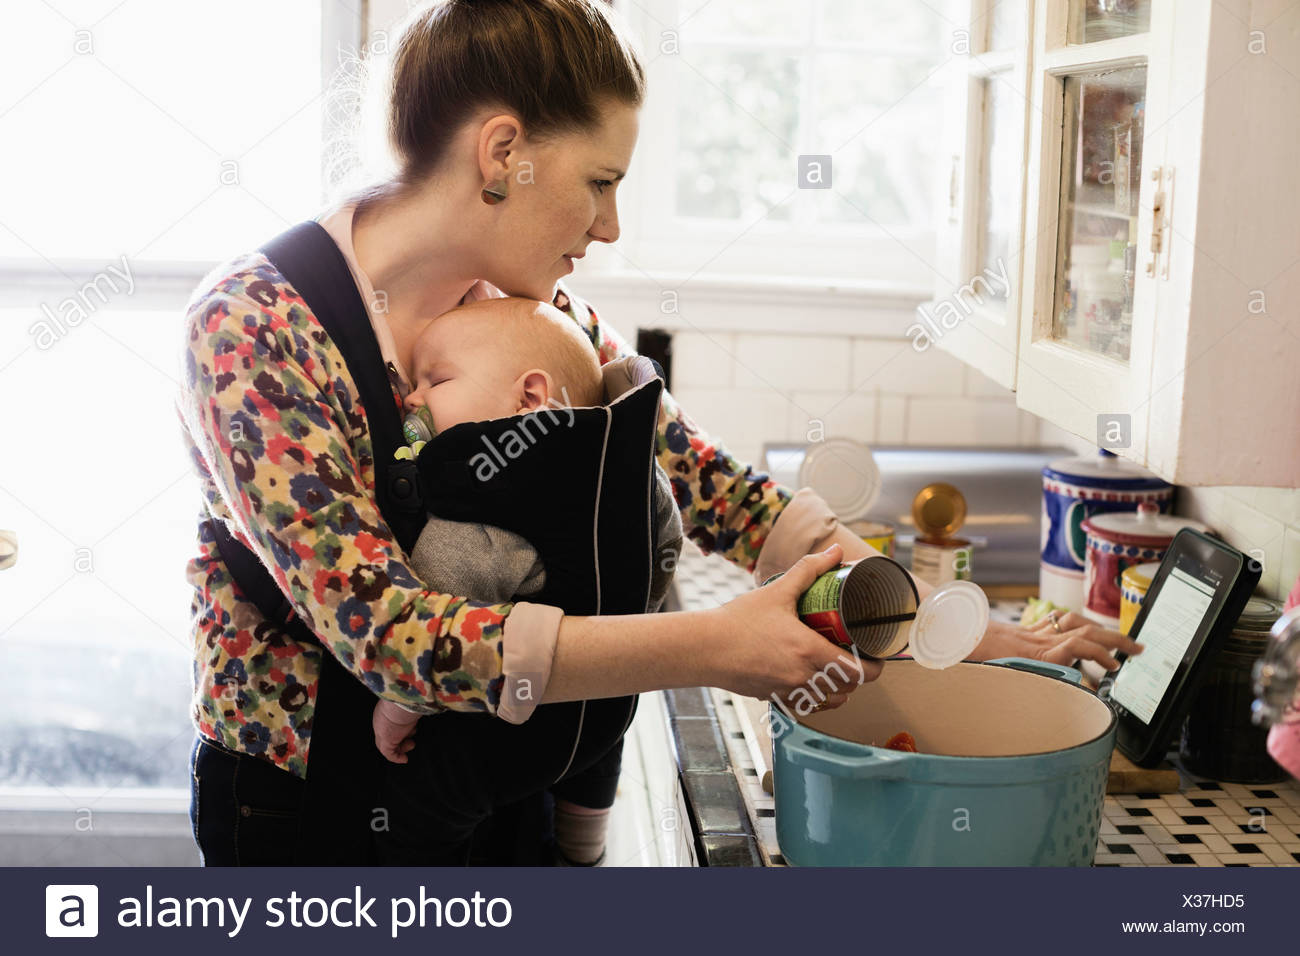 Mid adult mother with baby son in sling preparing food in kitchen Stock Photo